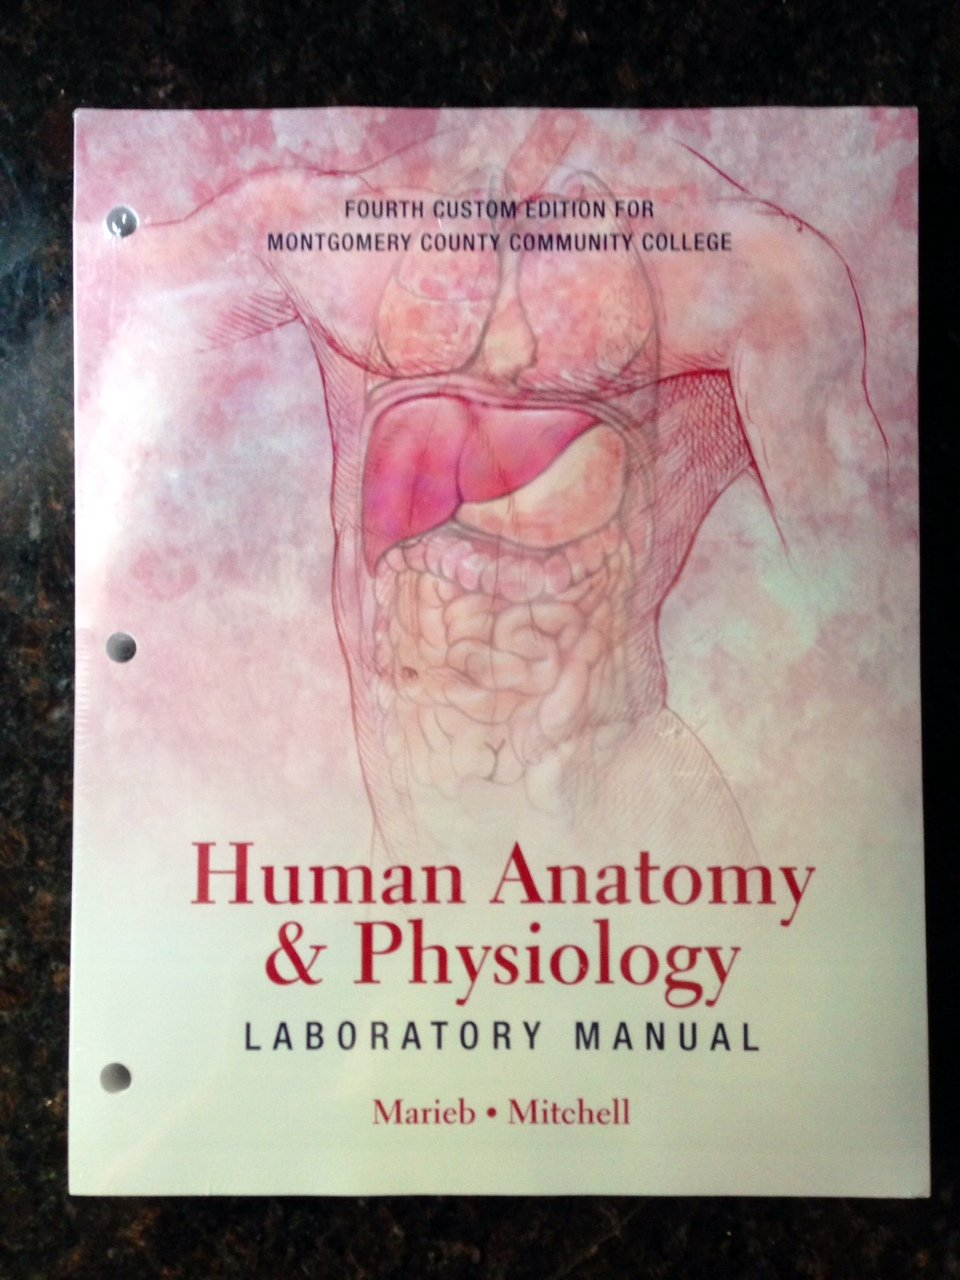 Human Anatomy and Physiology Laboratory Manual Fourth Edition for  Montgomery County Community College: Susan J. Mitchell Elaine N. Marieb:  9781269202299: ...